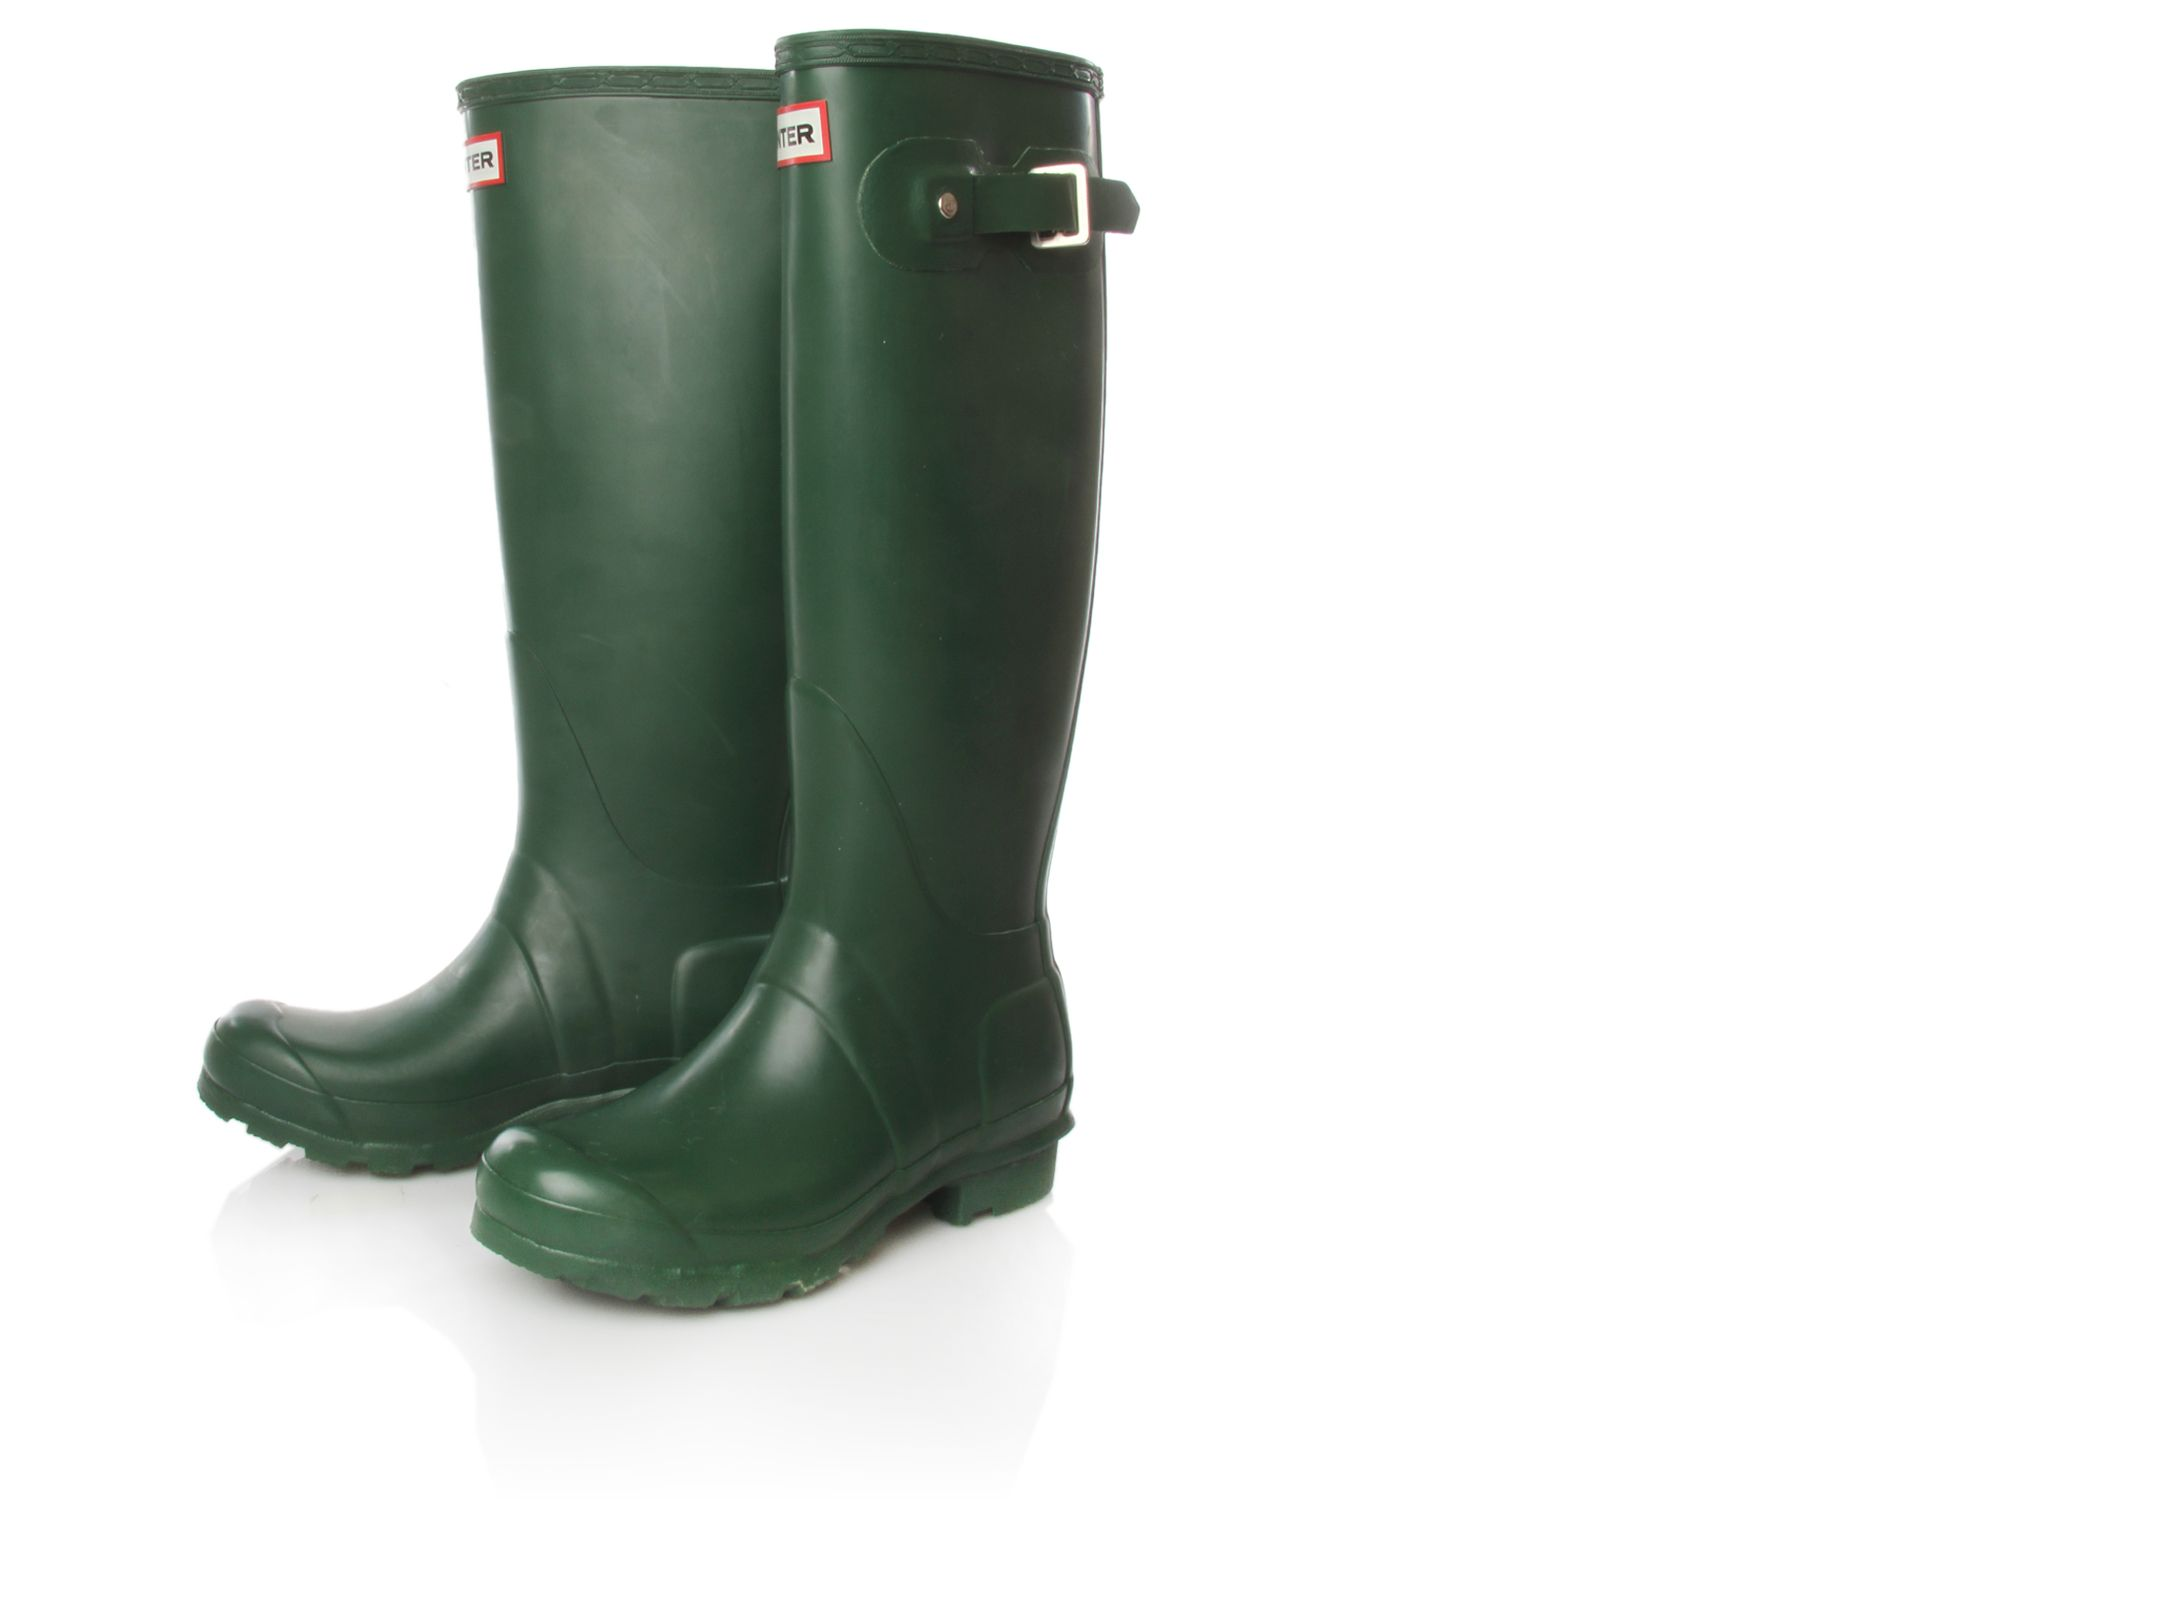 Original Wellington Boots